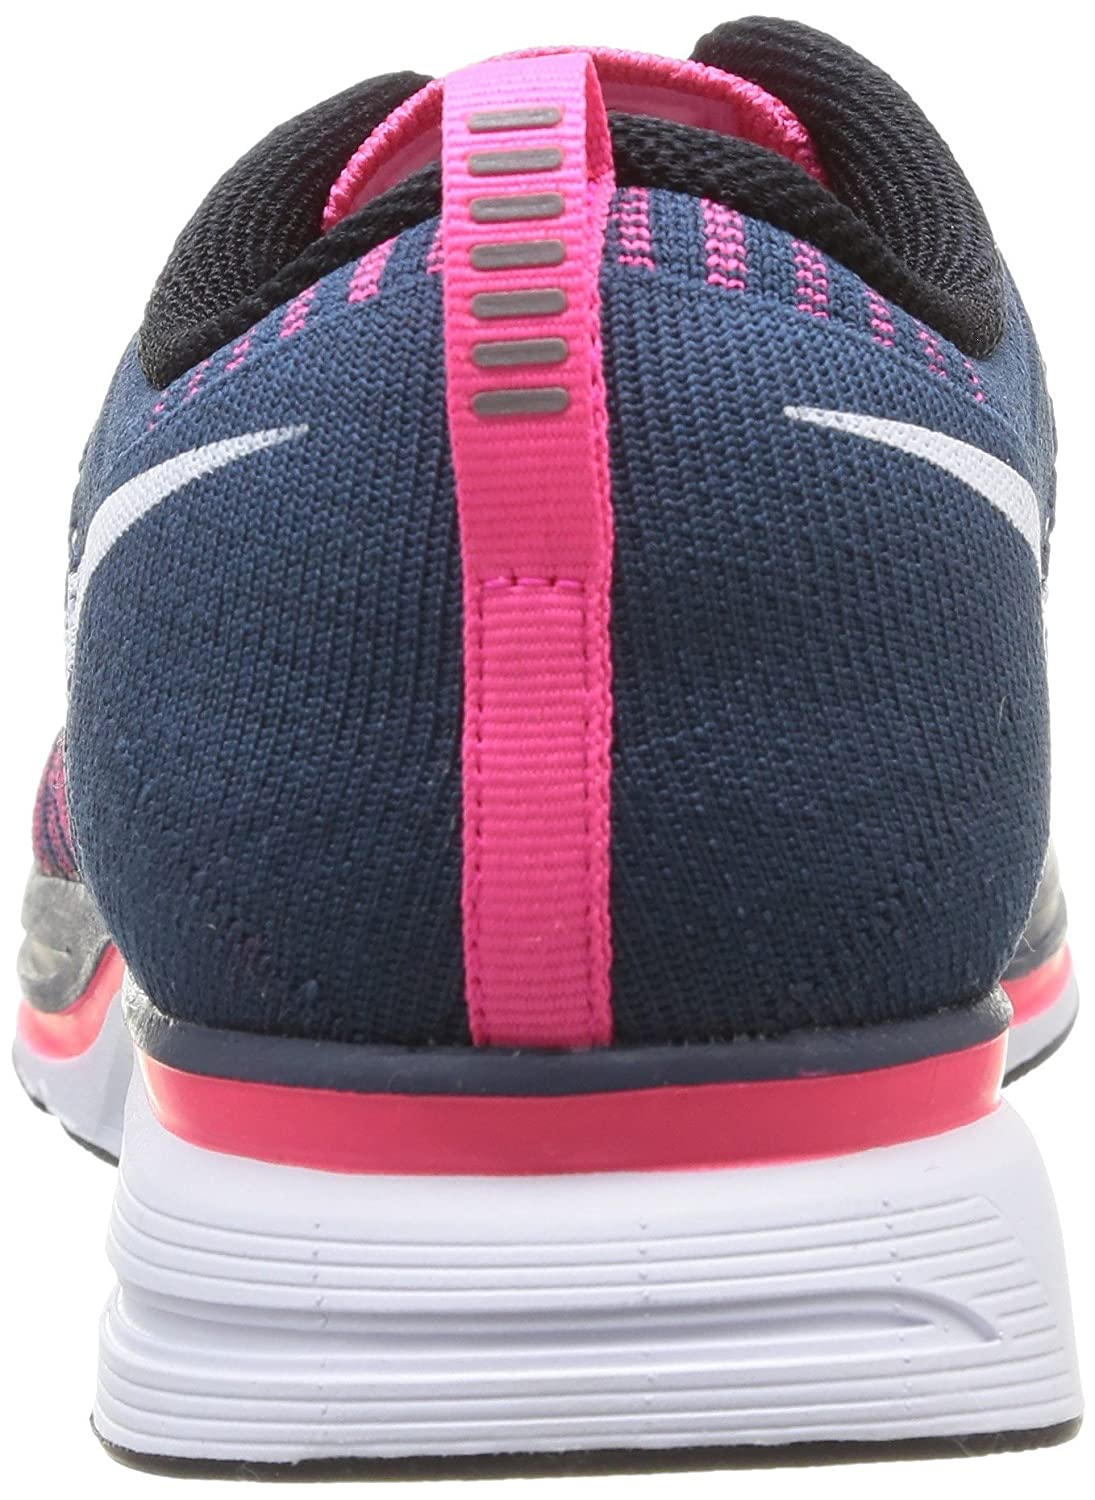 4227f8c6dab4 ... discount code for amazon nike mens flyknit trainer squadron blue white  pink flash fashion sneakers 9efc8 ...